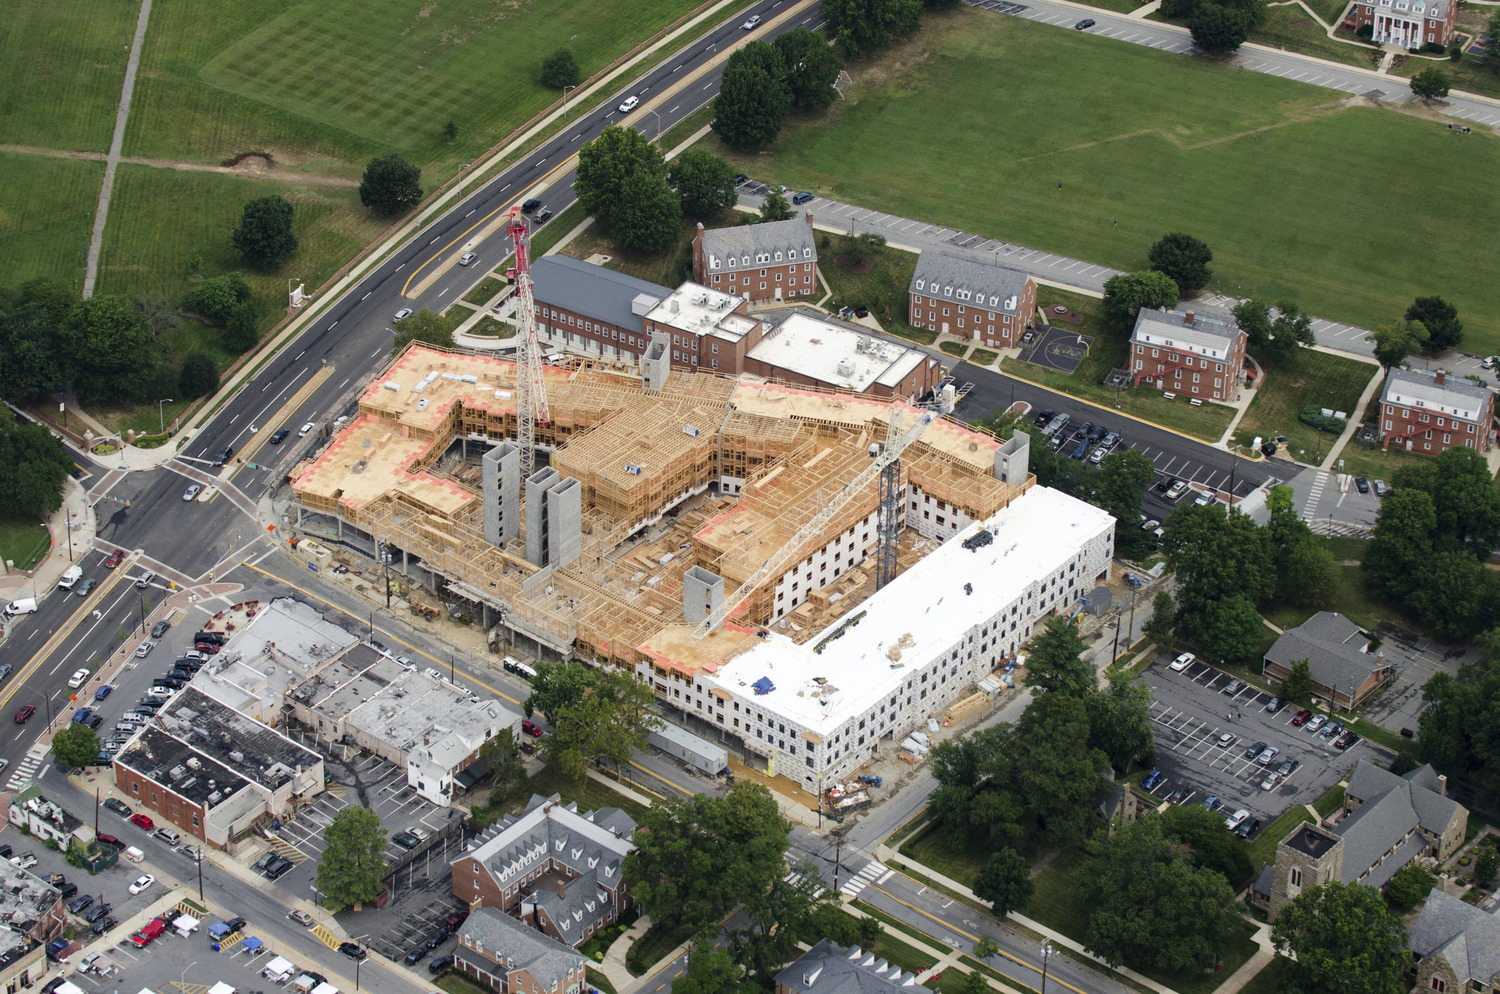 CBG builds Landmark College Park, a 283-Unit, 843-Bed Student Housing Community with Retail in College Park, MD - Image #10